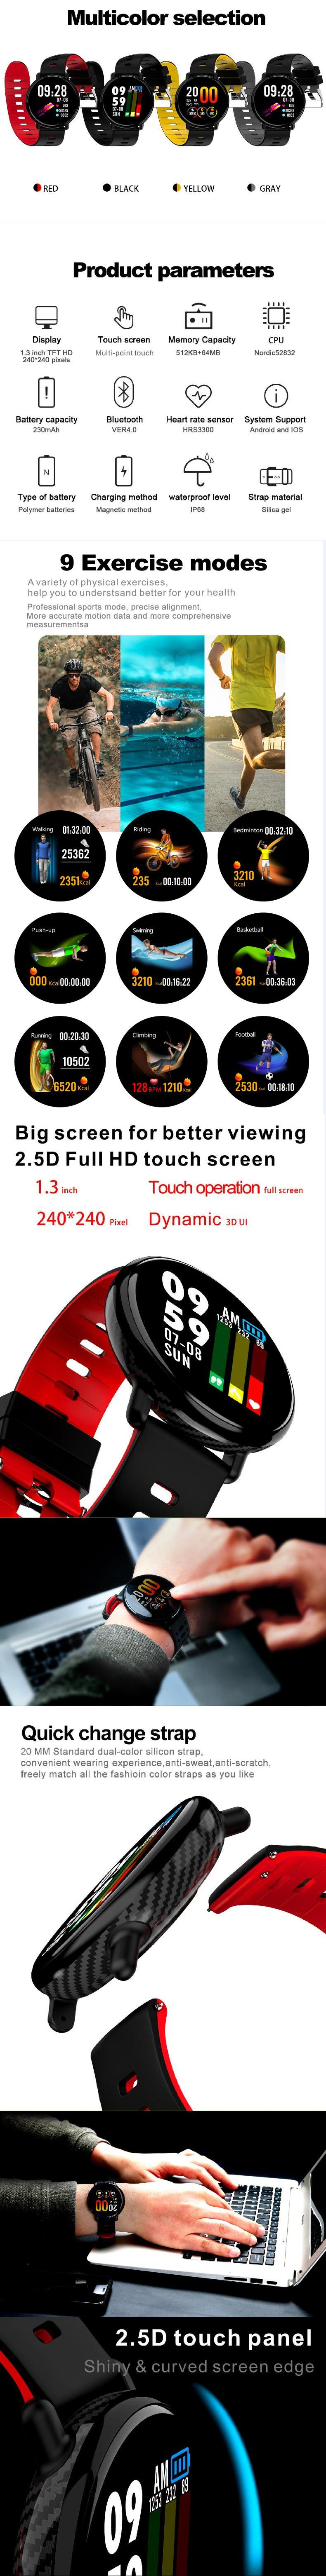 Wholesale suppliers 4g smart watch 3g smartwatch for good service.